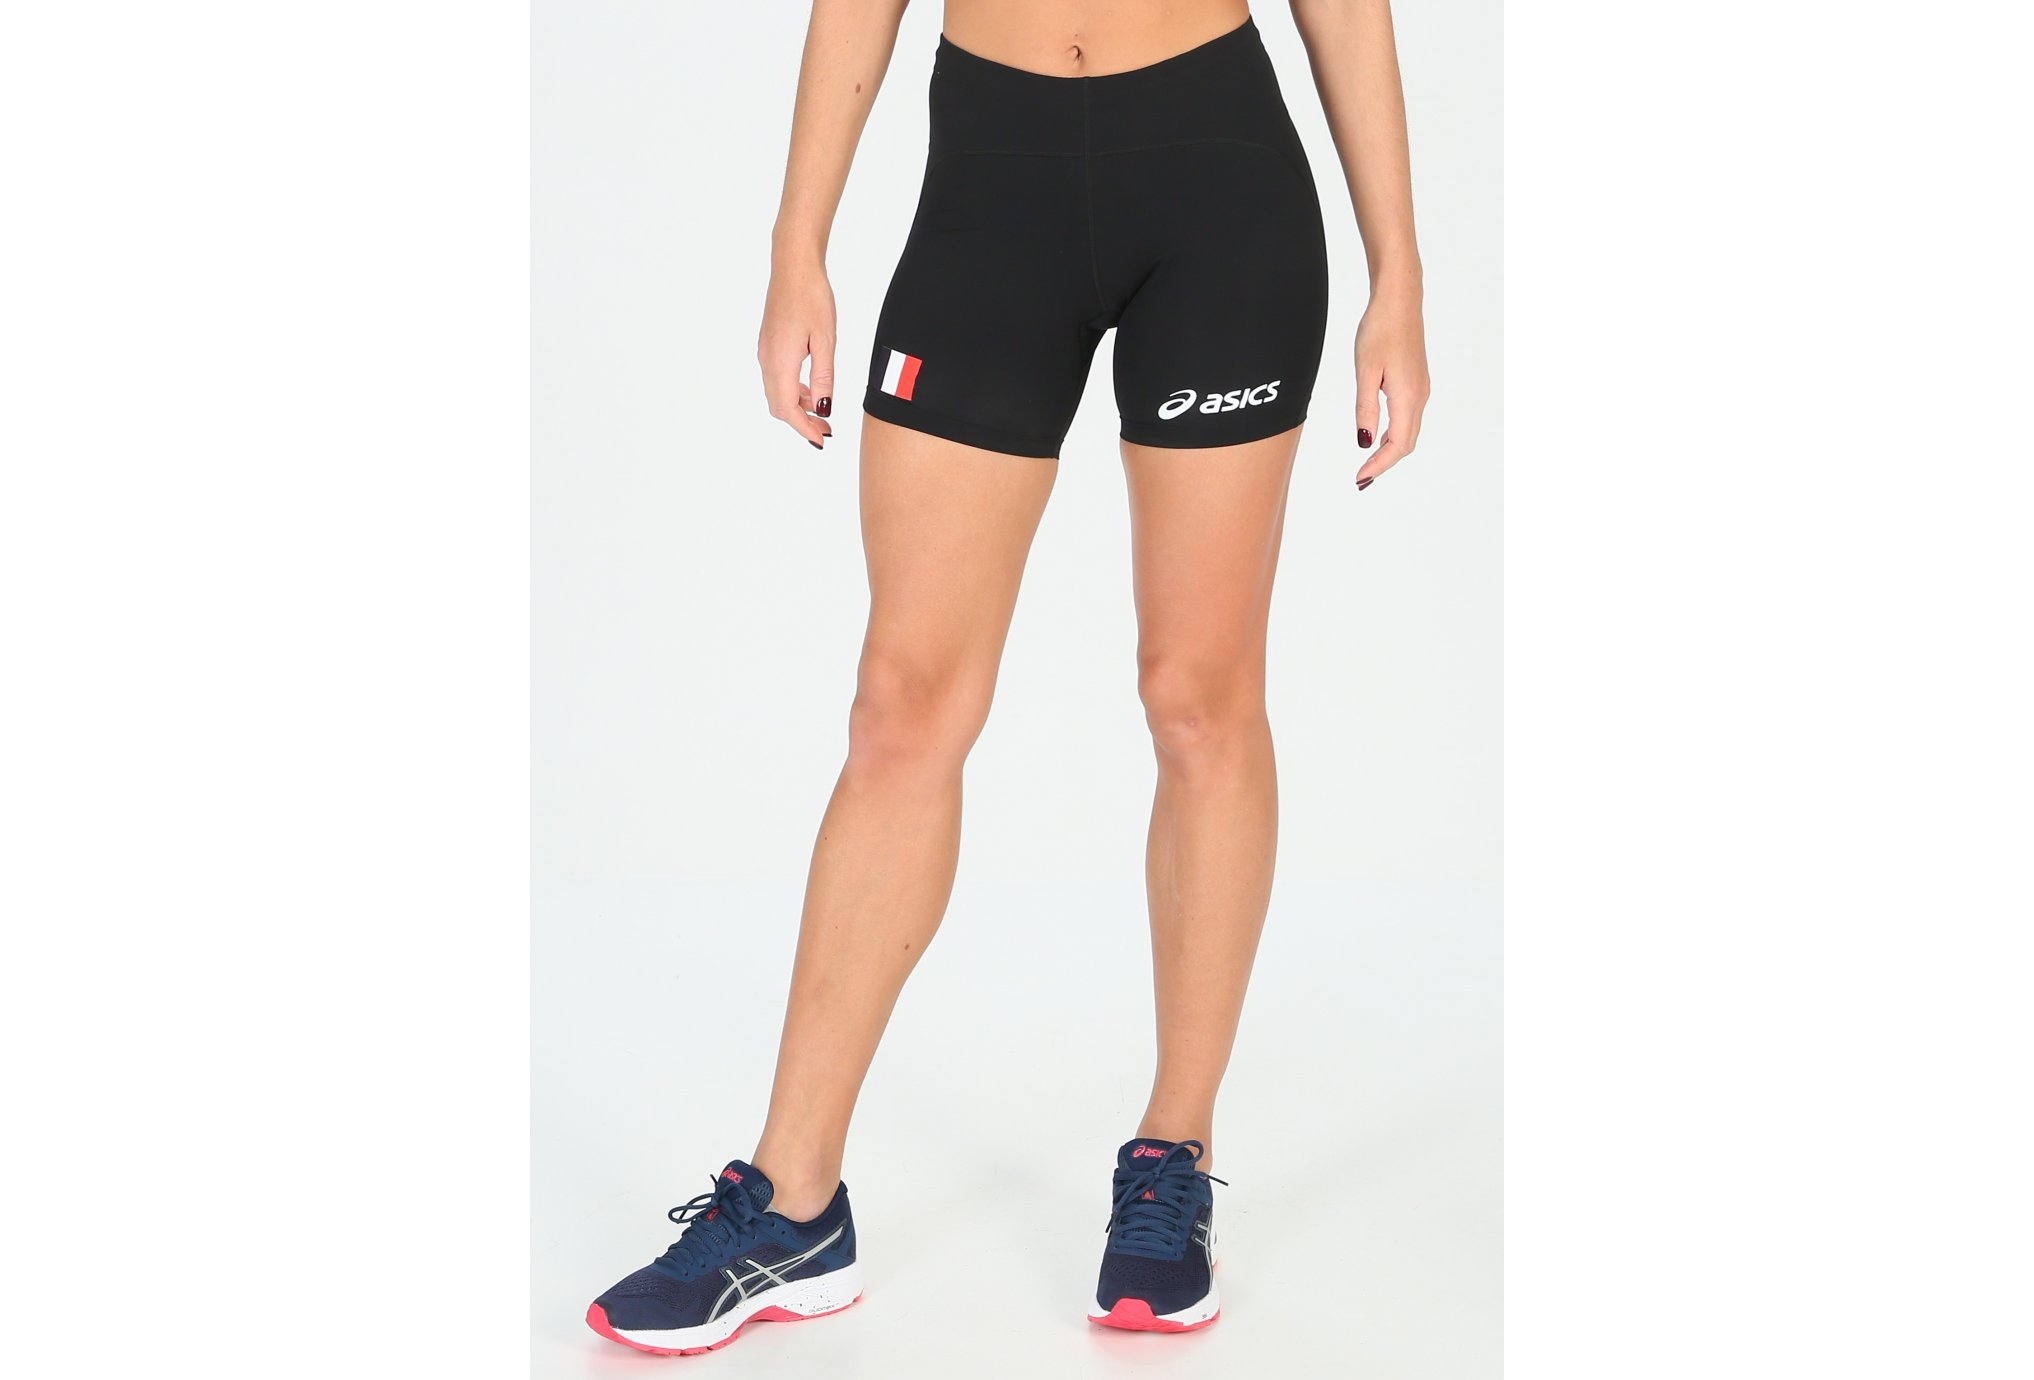 Asics Short Sprinter Equipe de France W vêtement running femme